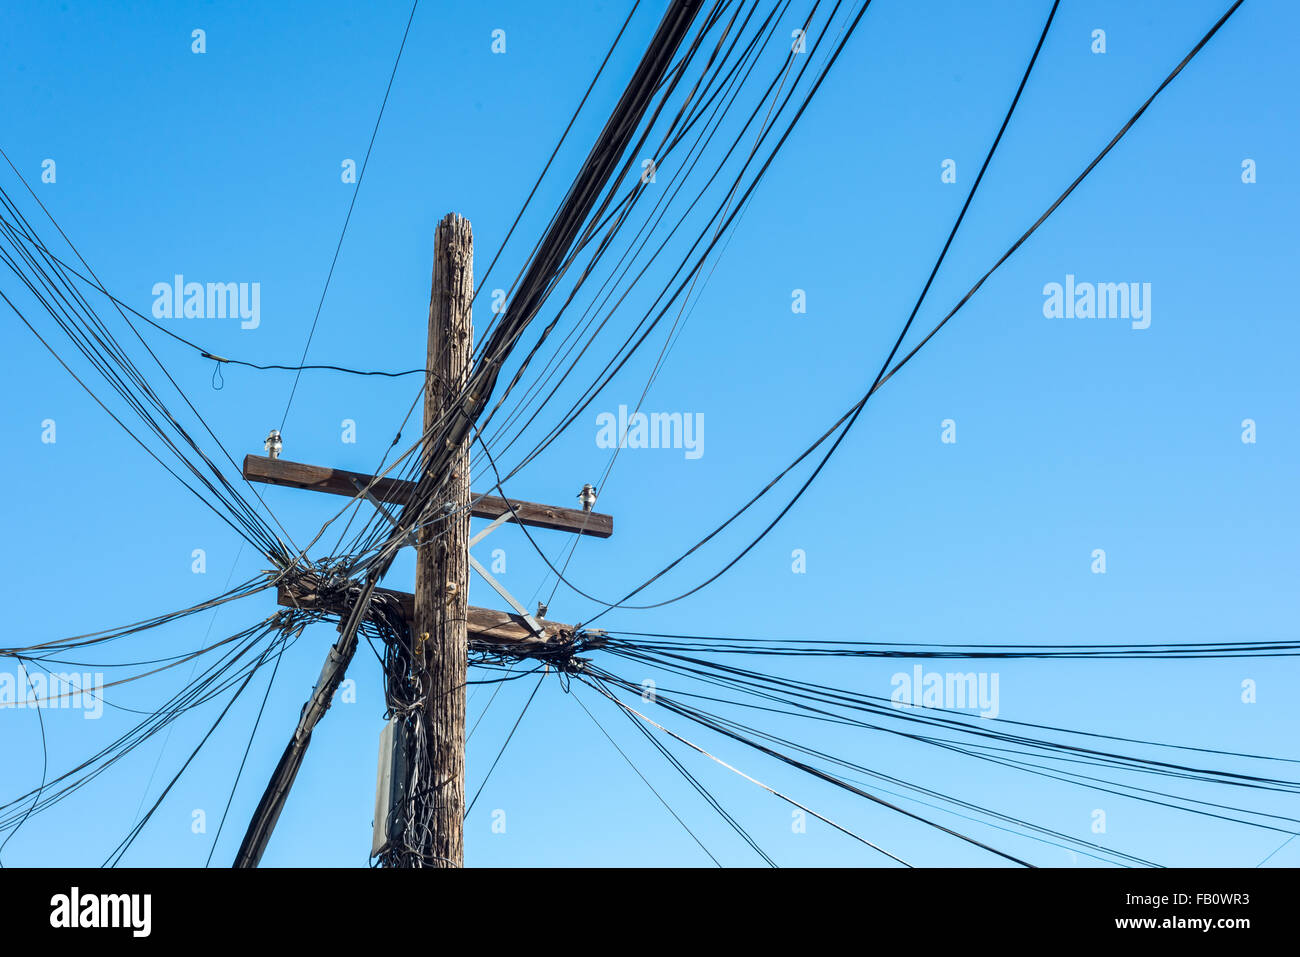 Messy Wires Stock Photos & Messy Wires Stock Images - Alamy